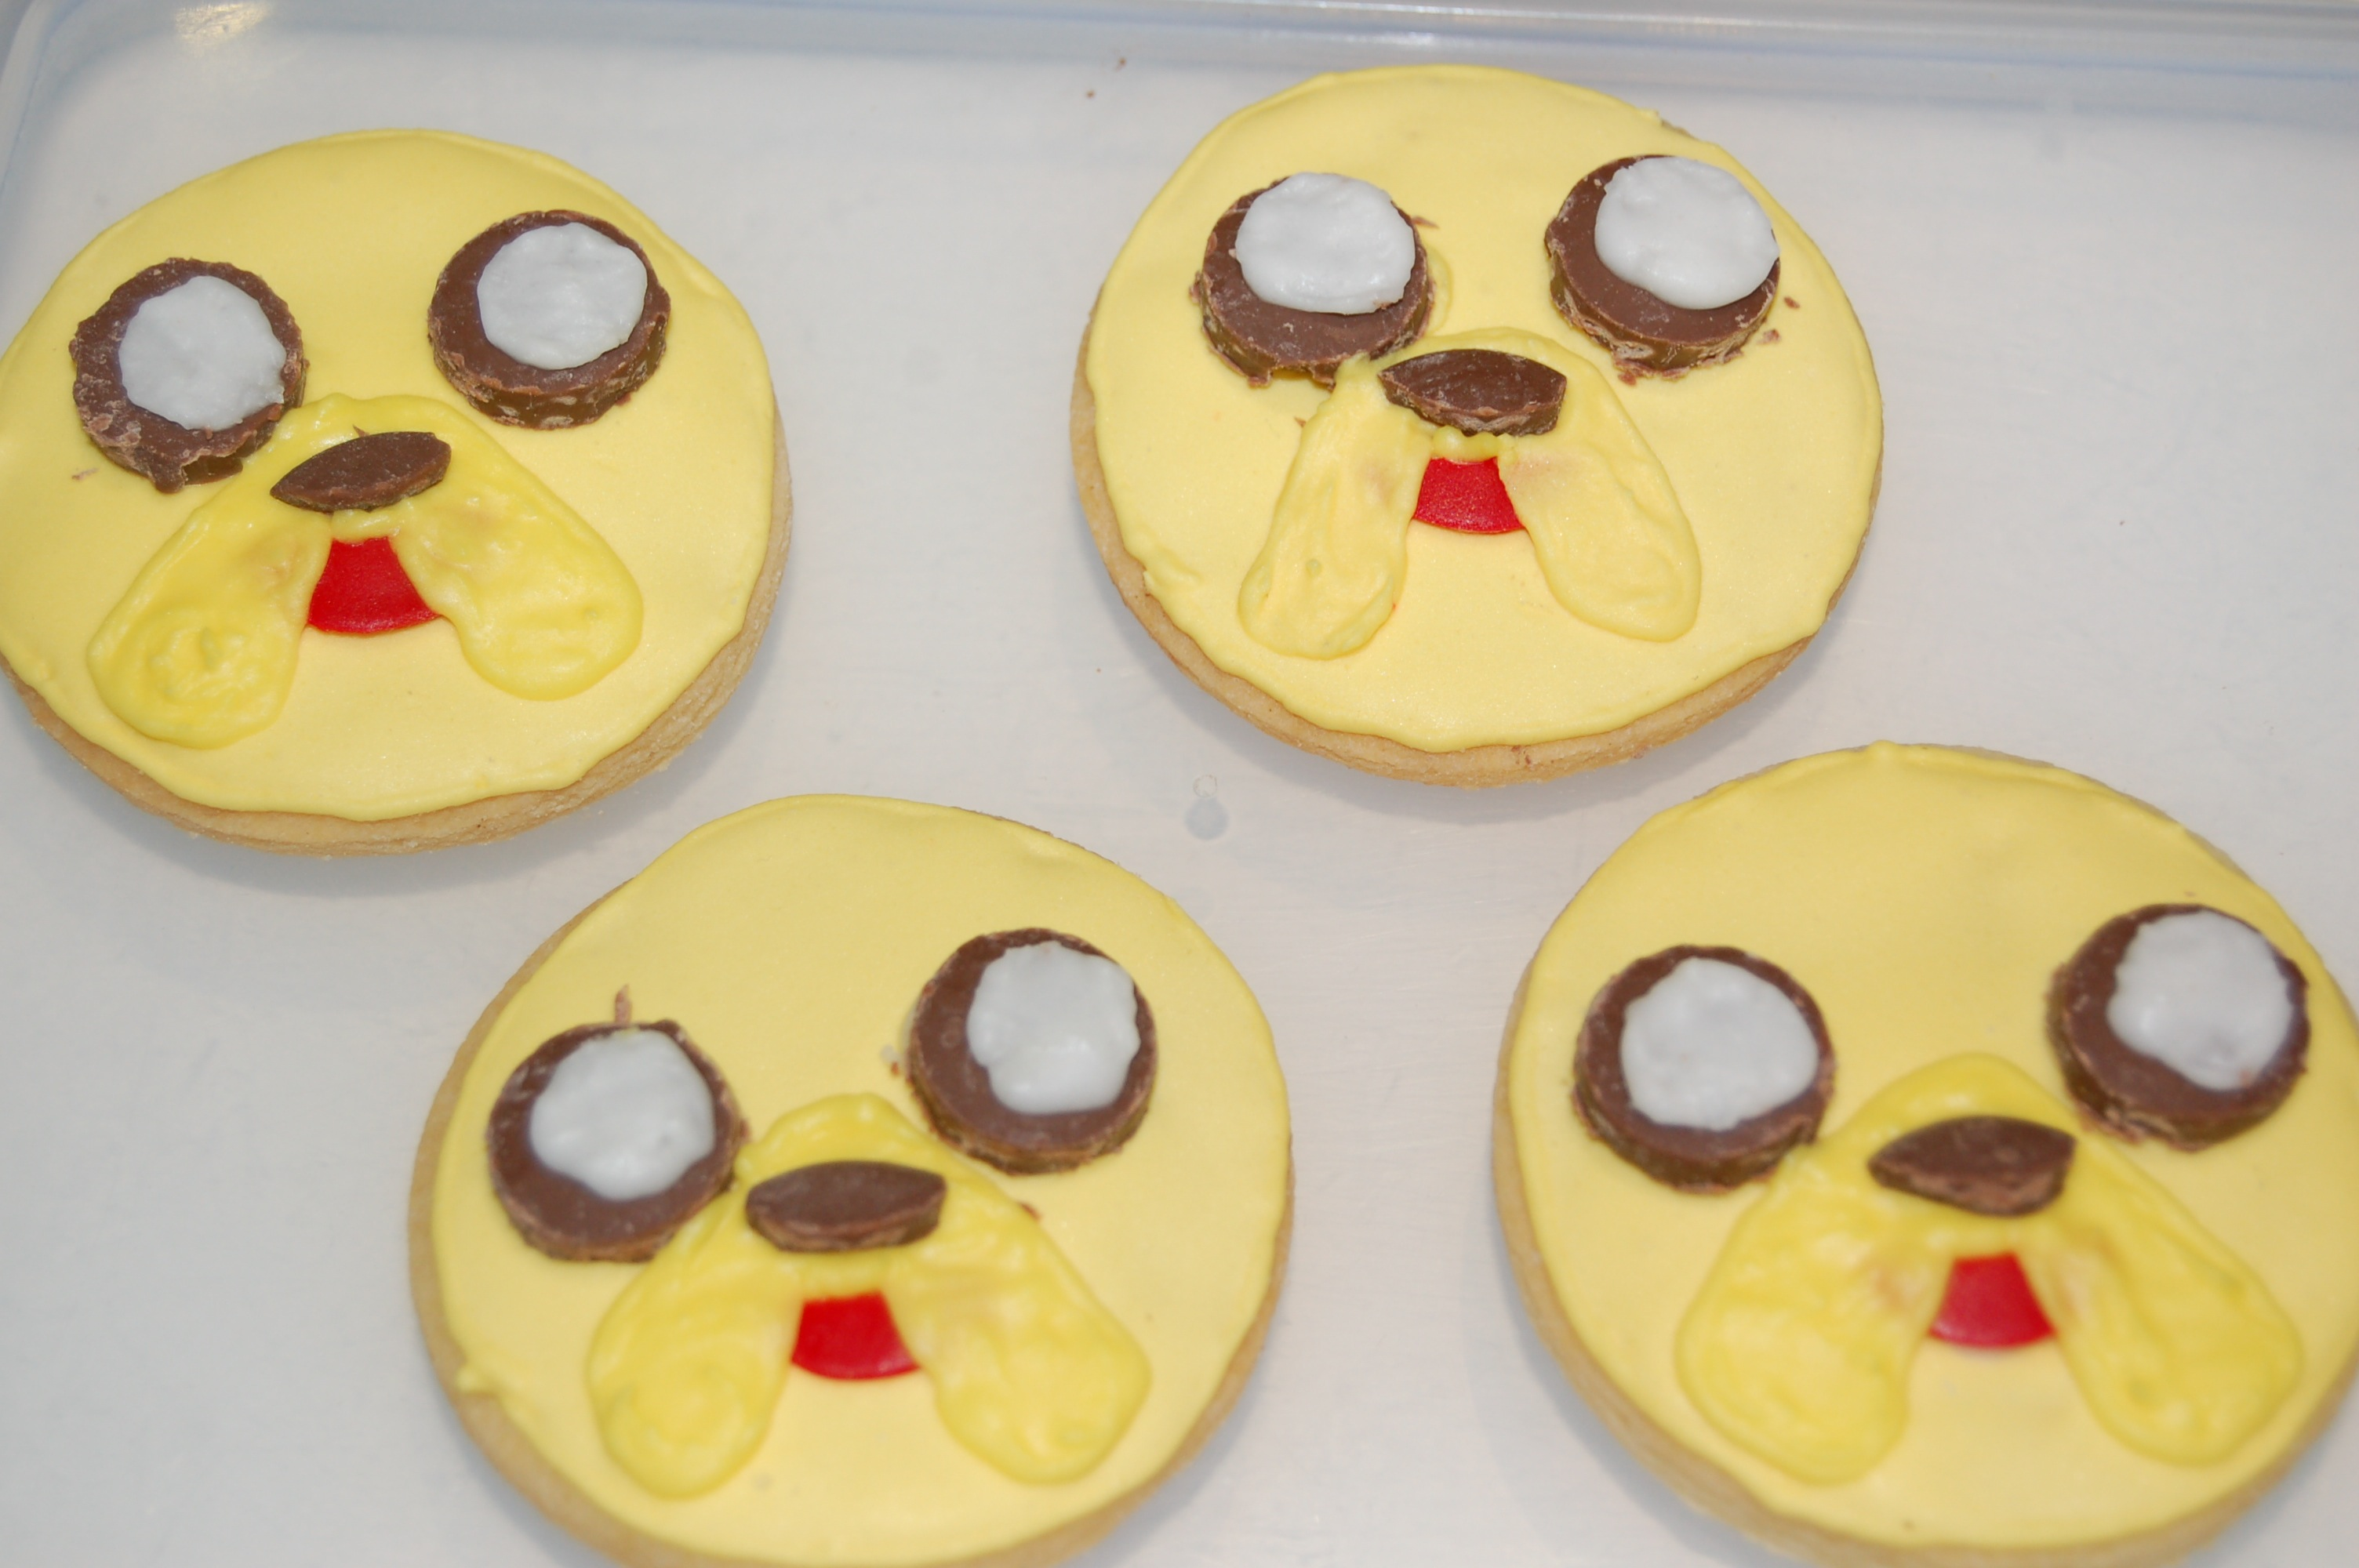 Jake The Dog Cookies From Adventure Time